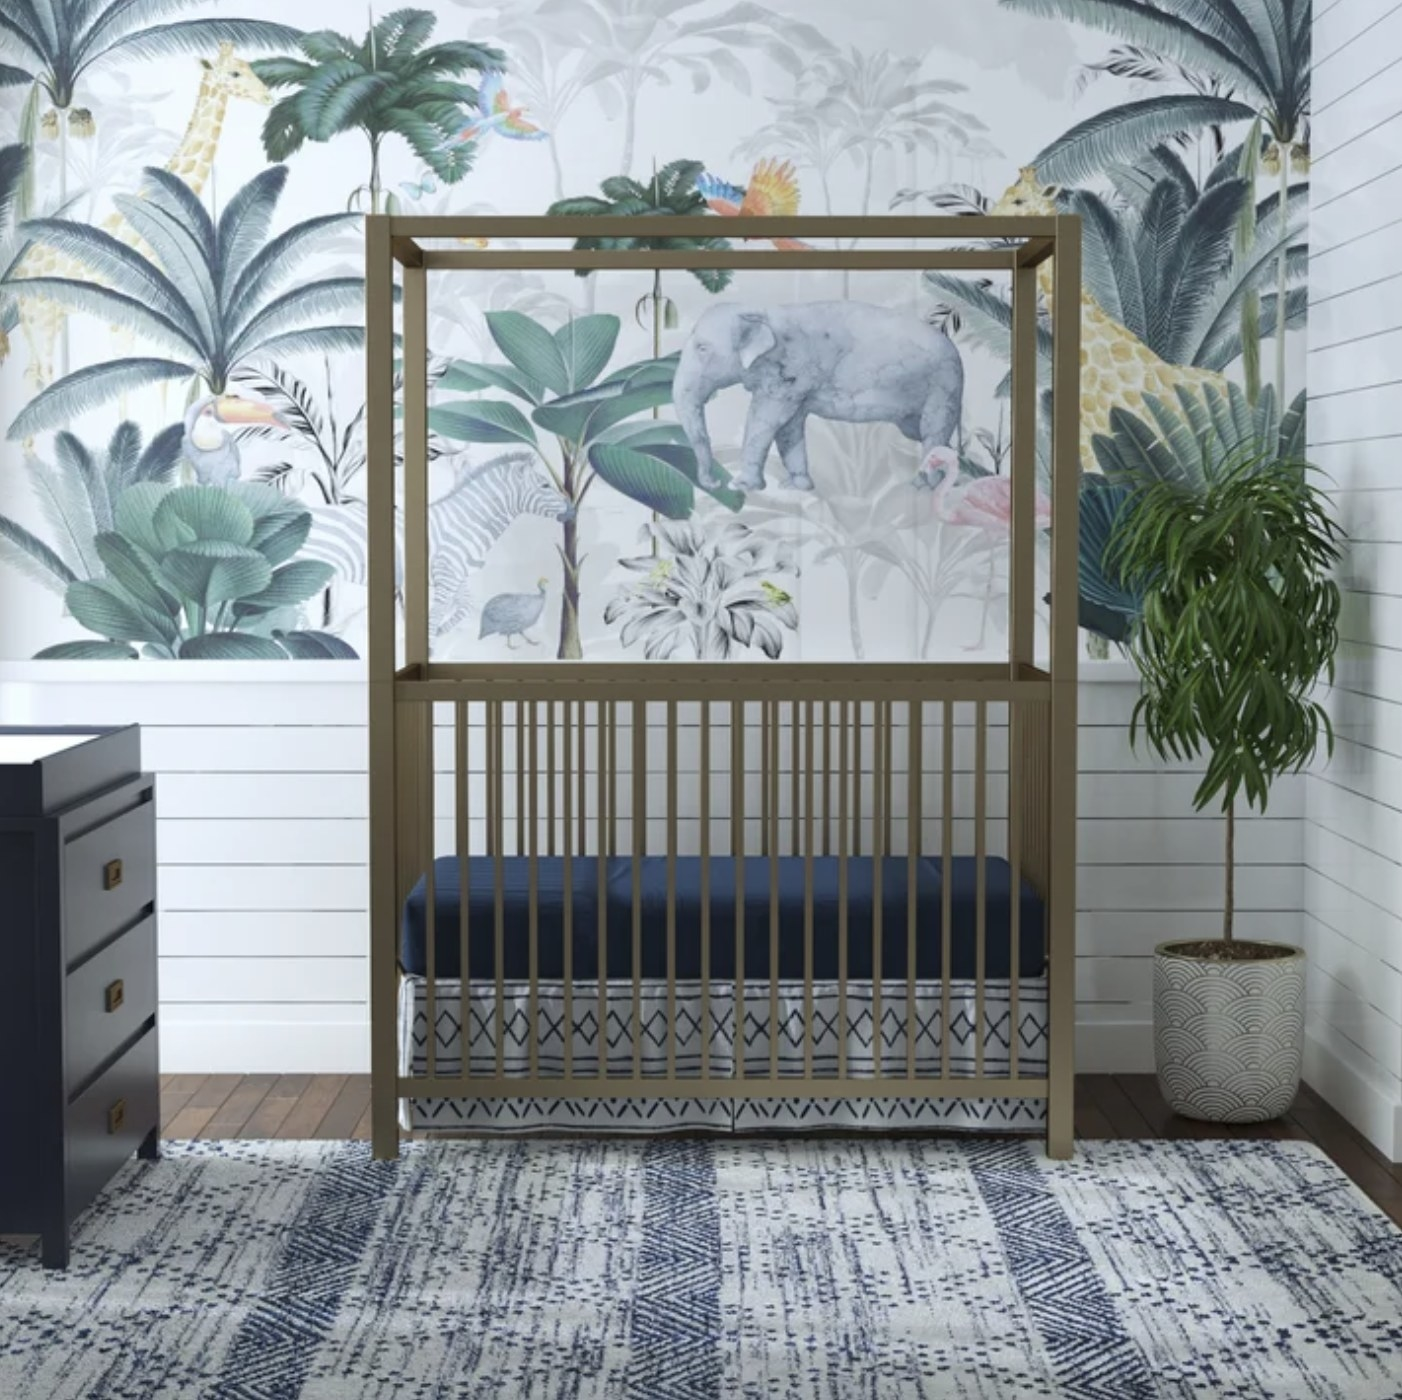 The crib with canopy and gold accents